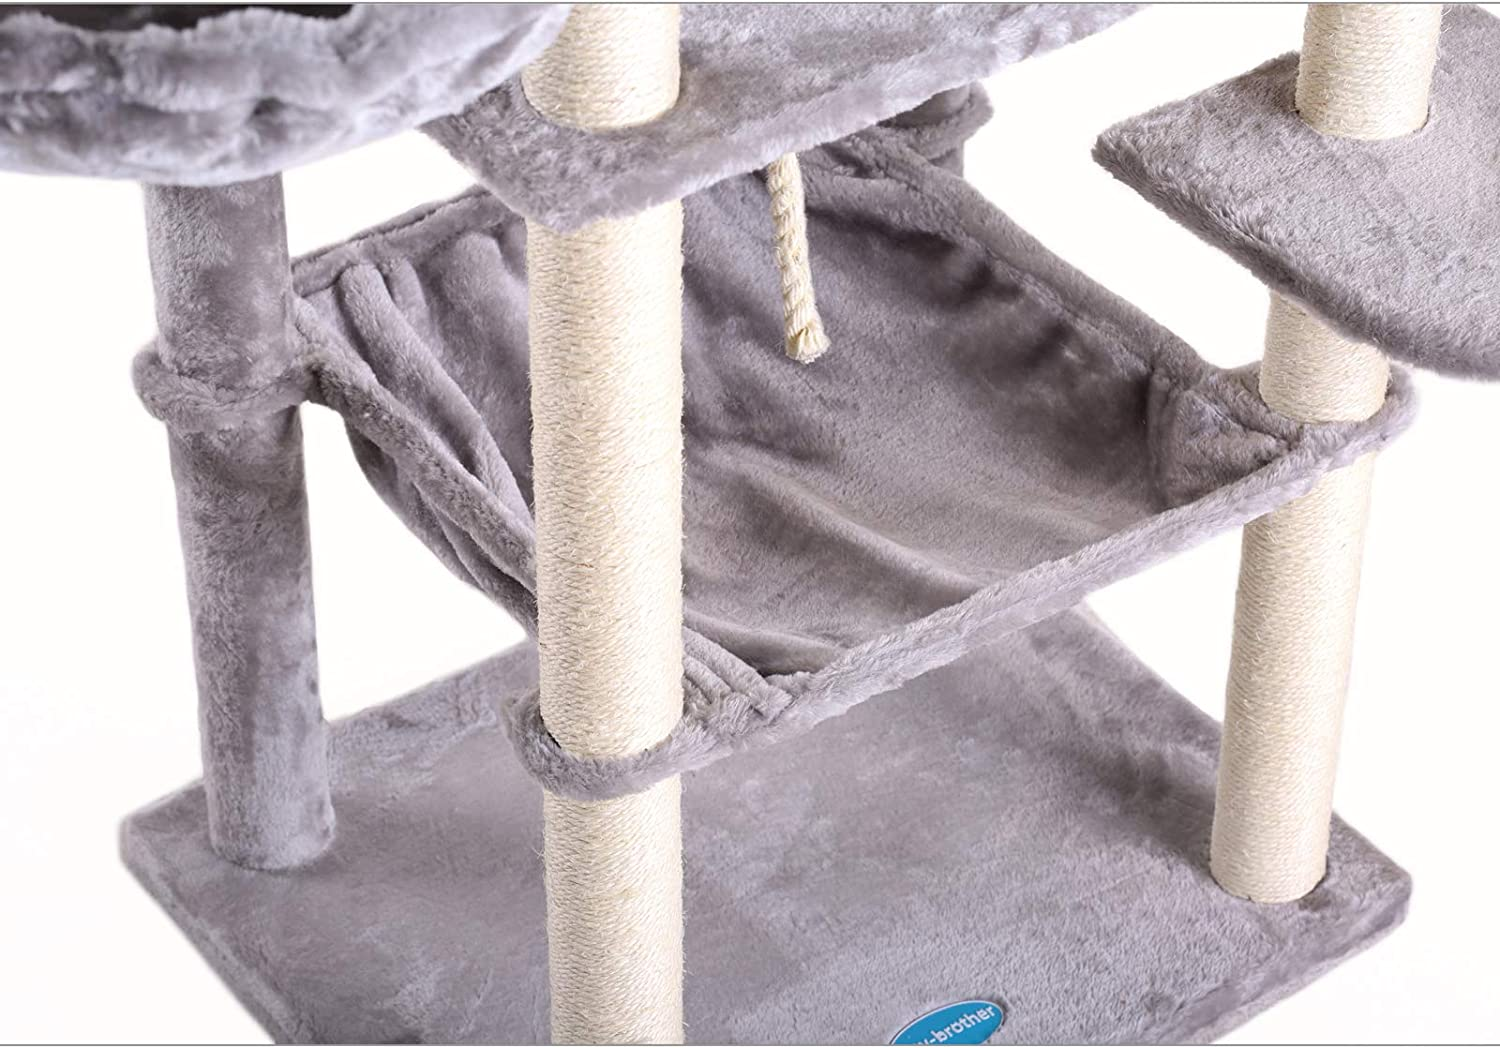 Padded Platform Hammock and Cave Anti-toppling Devices Cat Condos with Sisal Poles Hey-Brother Extra Big Cat Tree with Feeding Bowl Climbing Tree for Cats